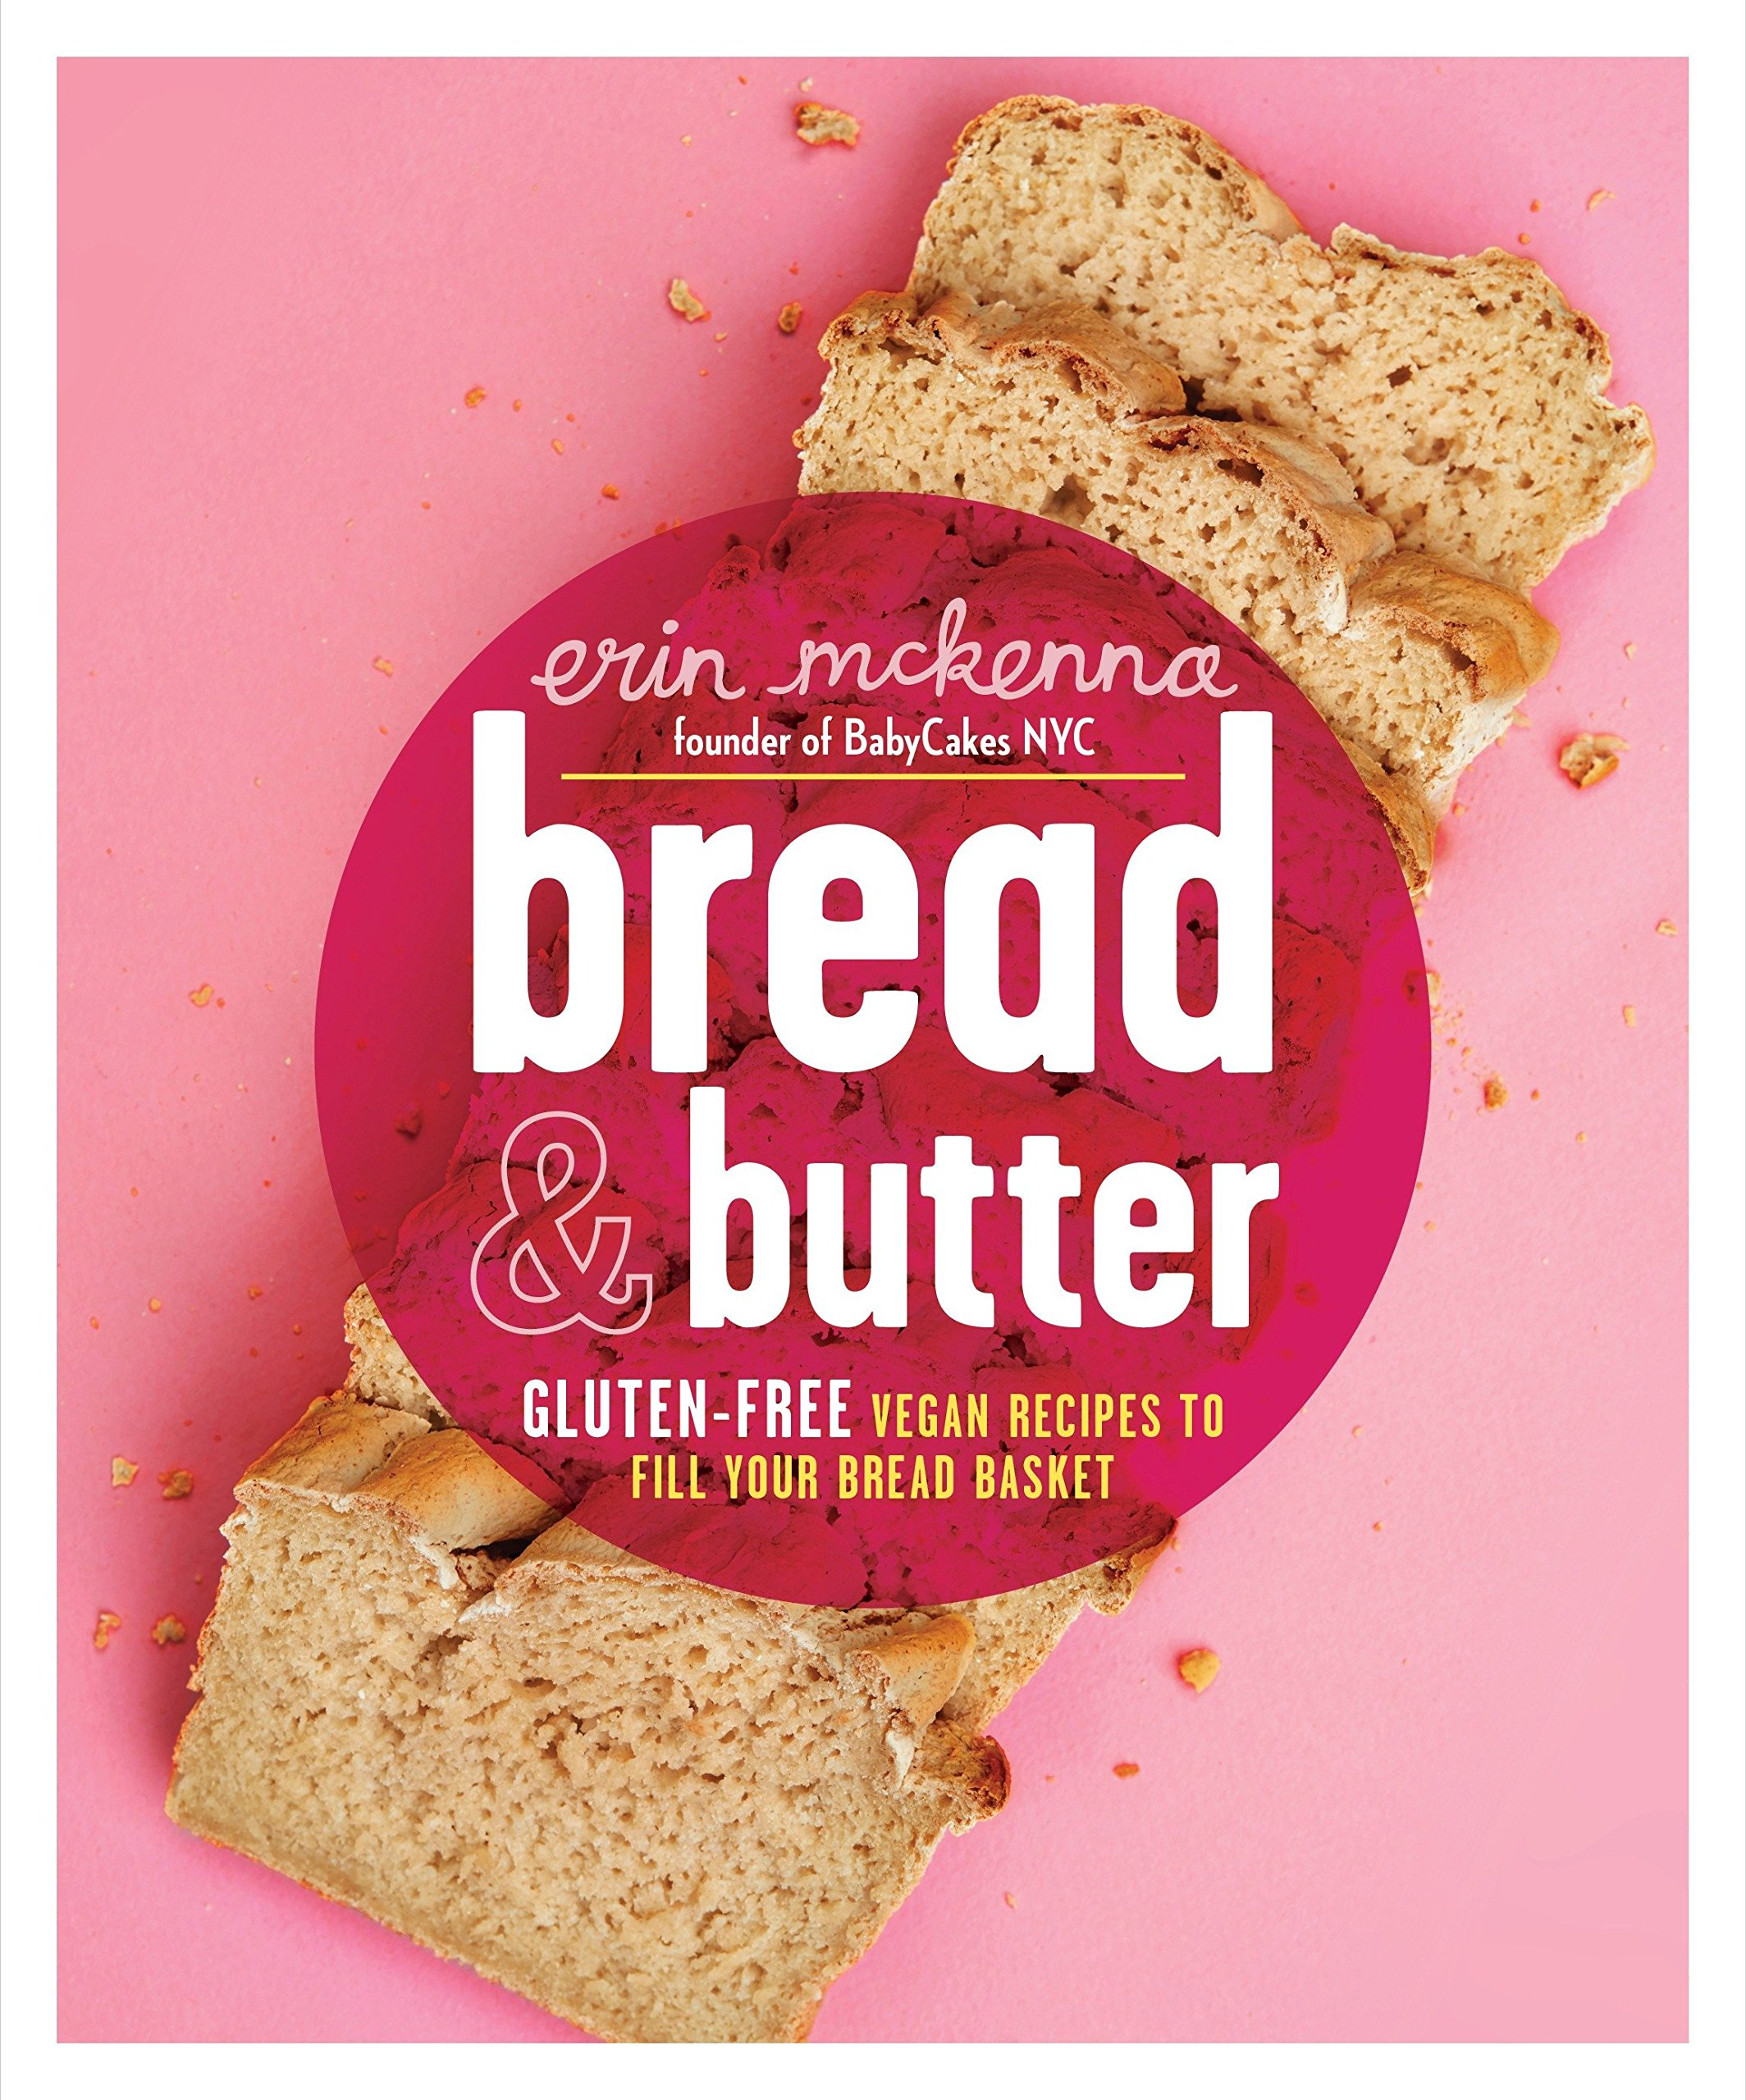 Bread & Butter: Gluten-Free Vegan Recipes to Fill Your Bread Basket: A Baking Book by Clarkson Potter Publishers